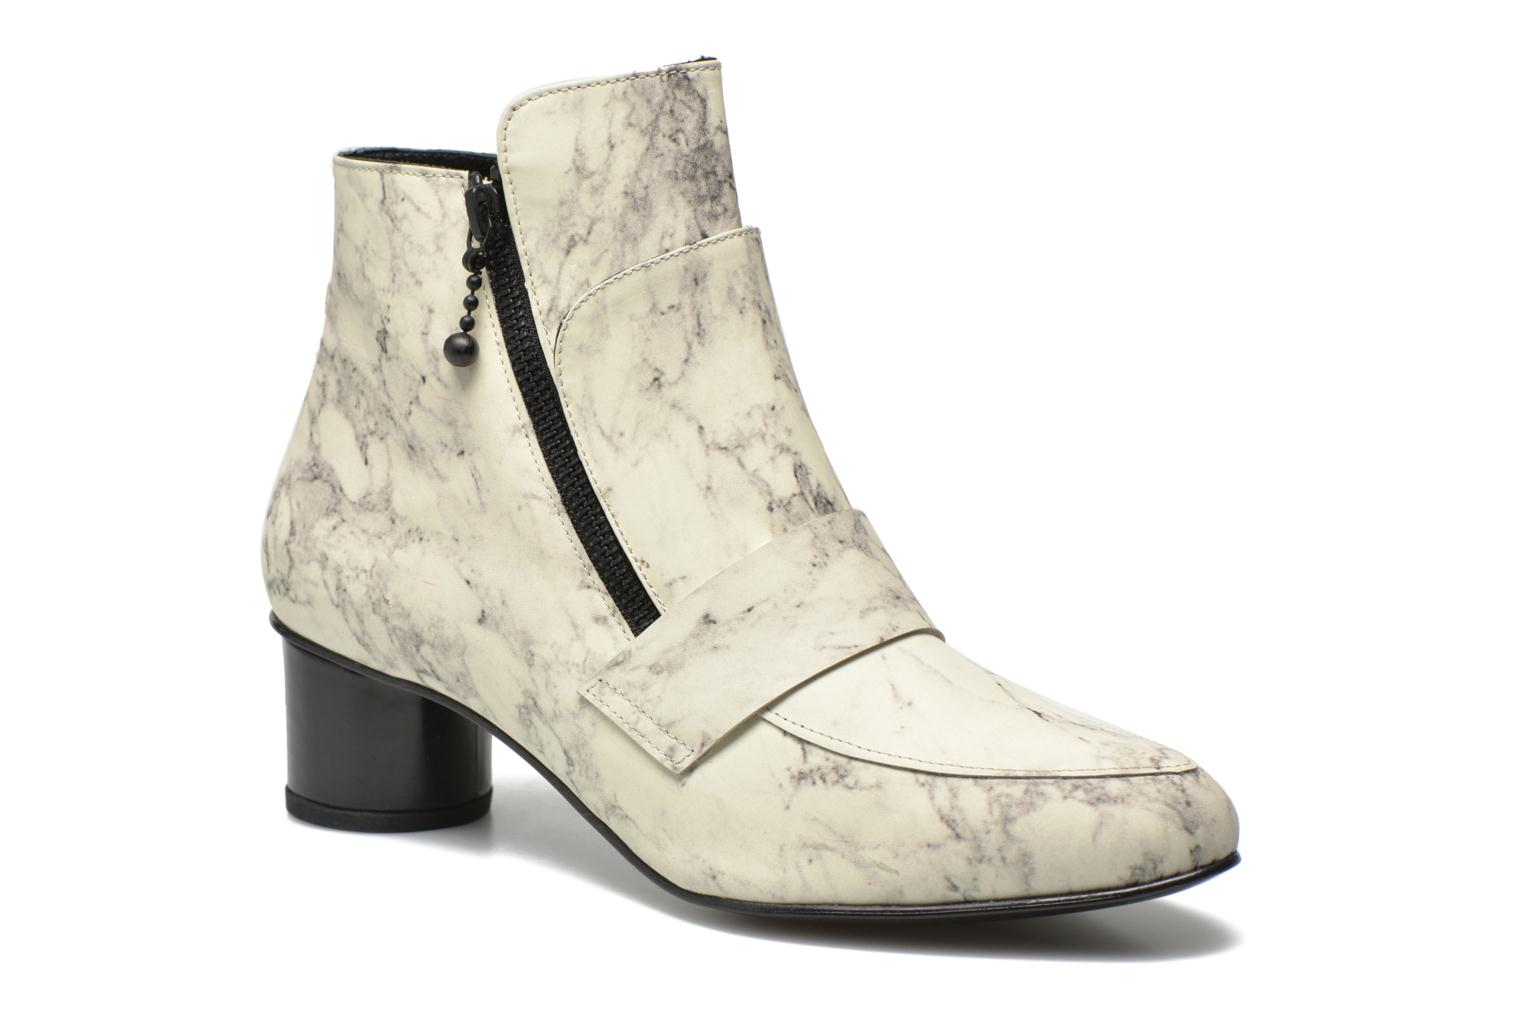 Boots en enkellaarsjes Marble Leather Zan Loafer Bootie by Opening Ceremony